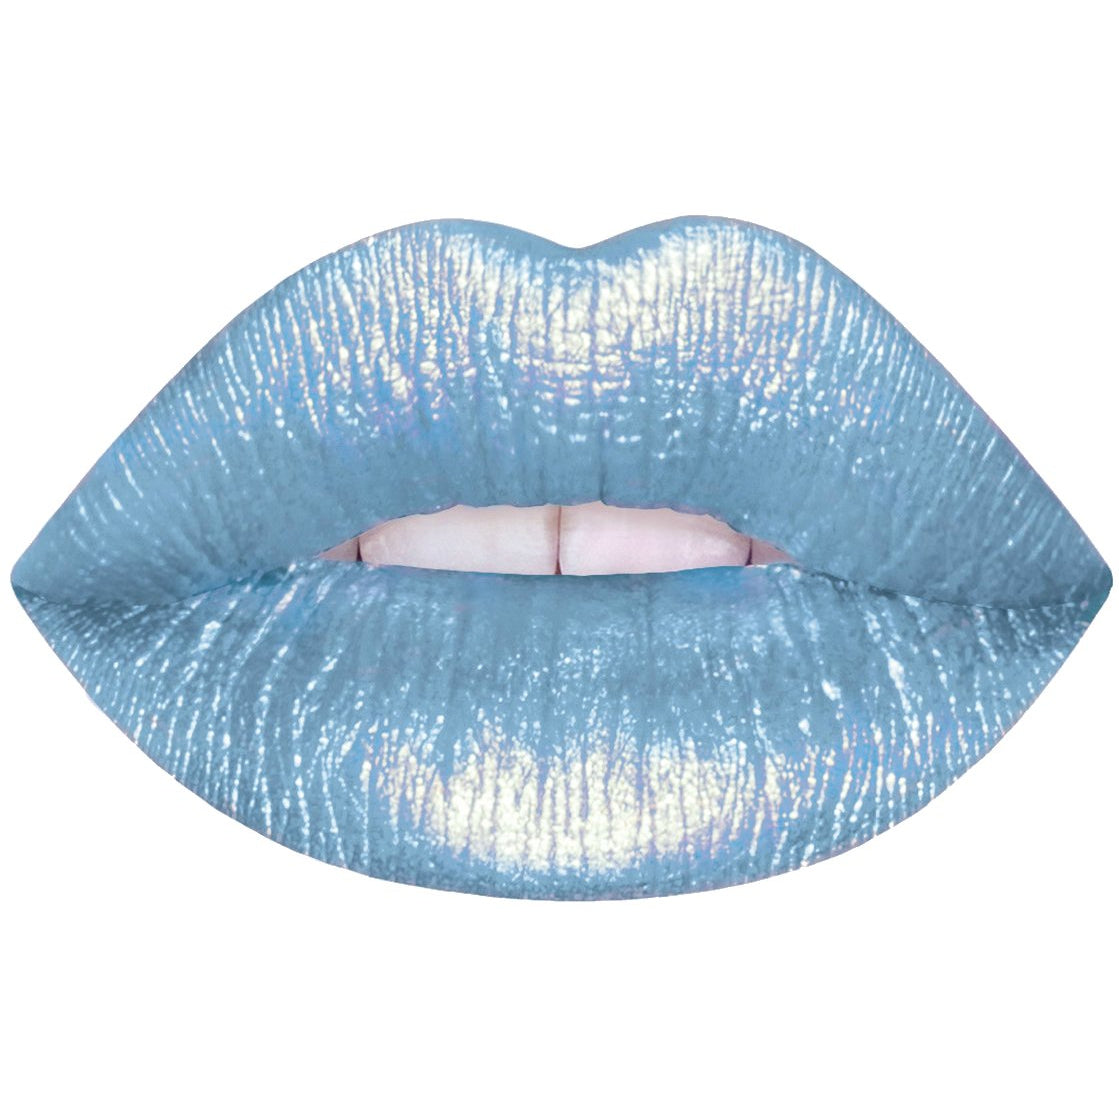 Mermaid's Grotto - Metallic Velvetine Liquid Matte Lipstick